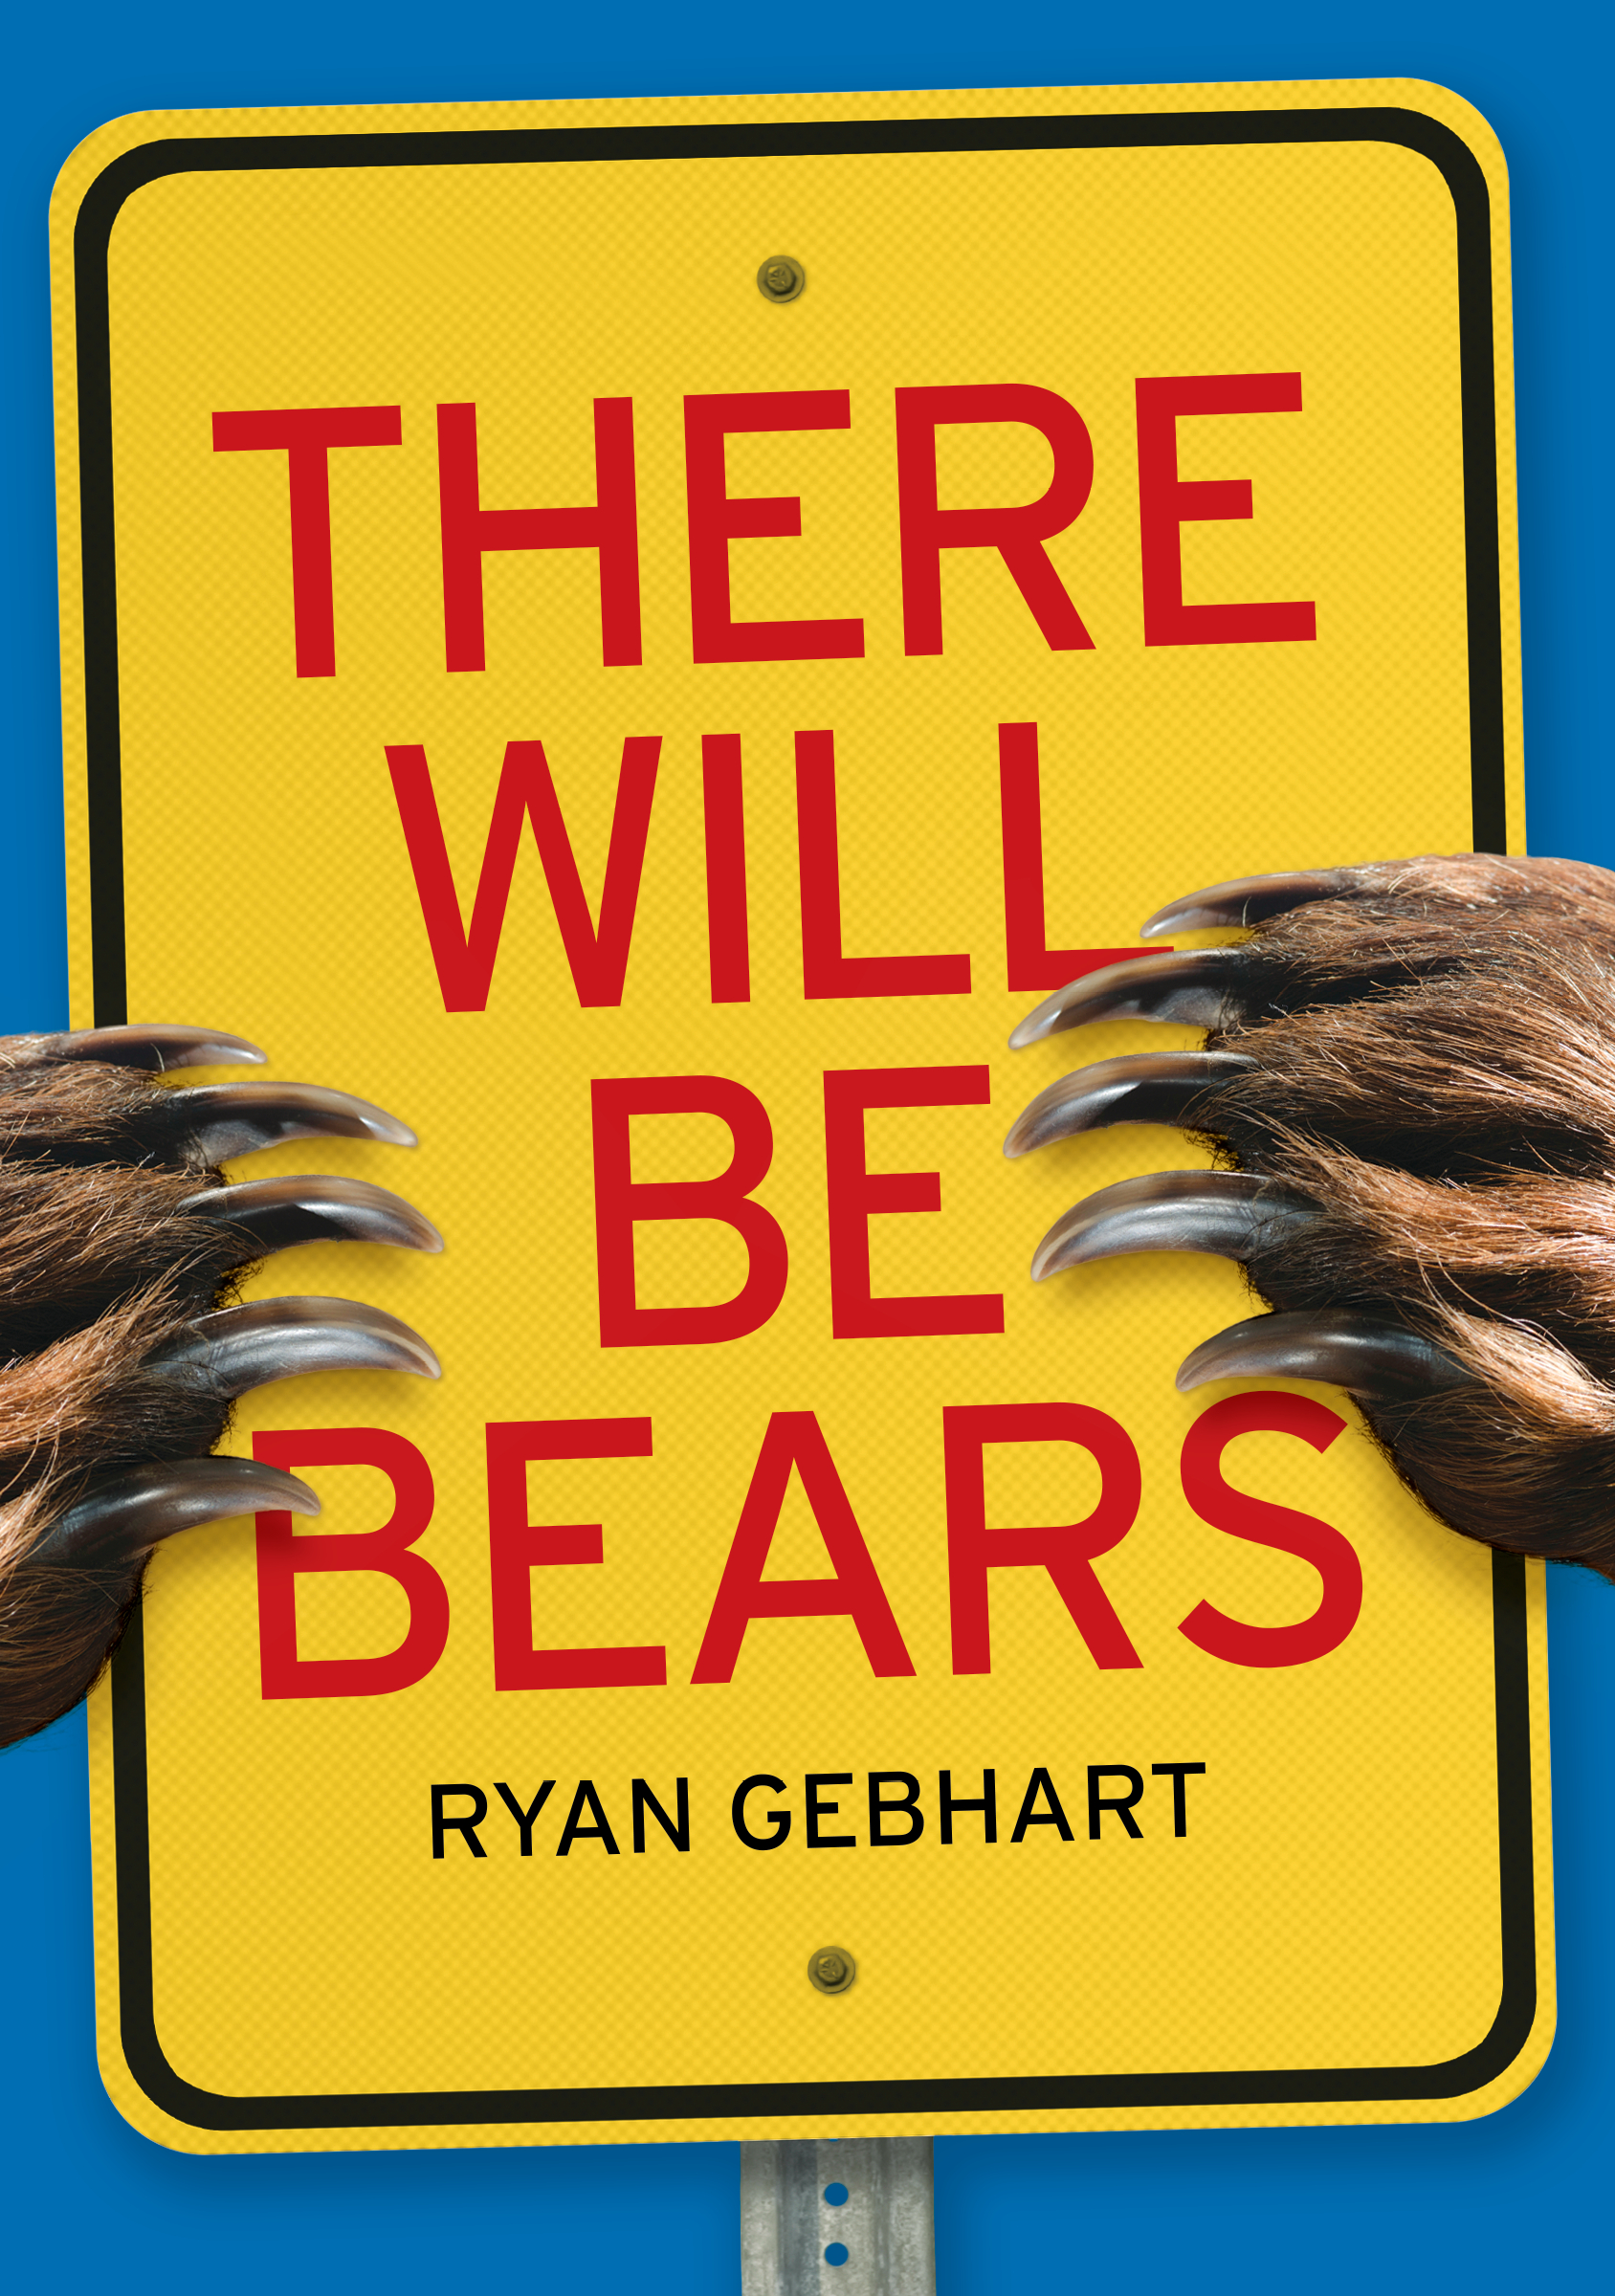 There Will Be Bears book covers